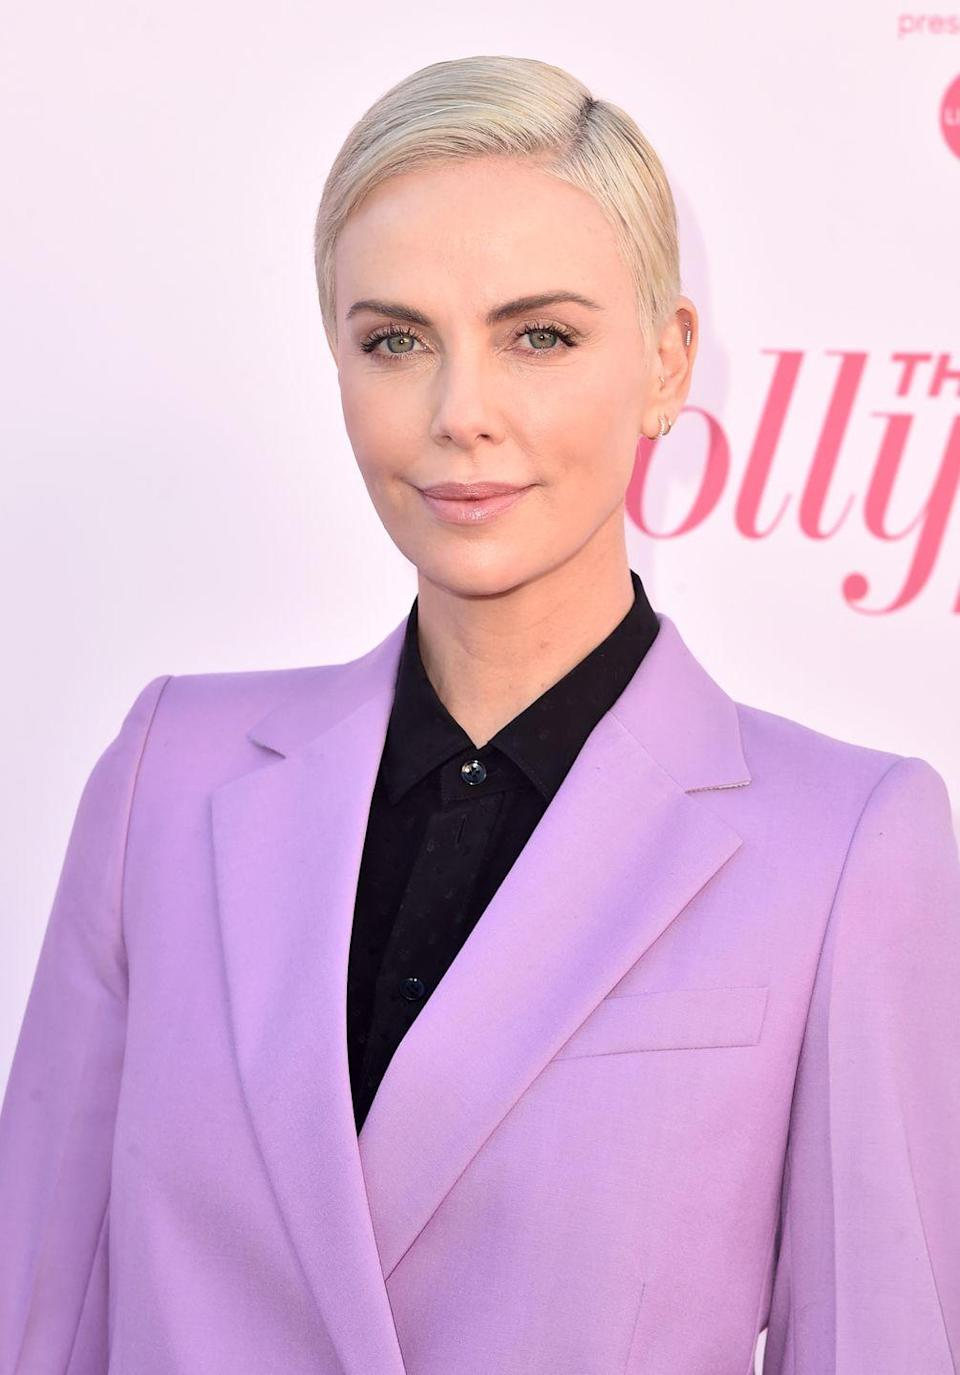 """<p>Charlize Theron has chopped hair short multiple times, most recently transitioning her <a href=""""https://www.instagram.com/p/B4JMr-OBUOo/"""" rel=""""nofollow noopener"""" target=""""_blank"""" data-ylk=""""slk:shockingly chic bowl cut"""" class=""""link rapid-noclick-resp"""">shockingly chic bowl cut</a> (for her role in <em>Fast and Furious 9</em>) into a pretty pixie.</p>"""